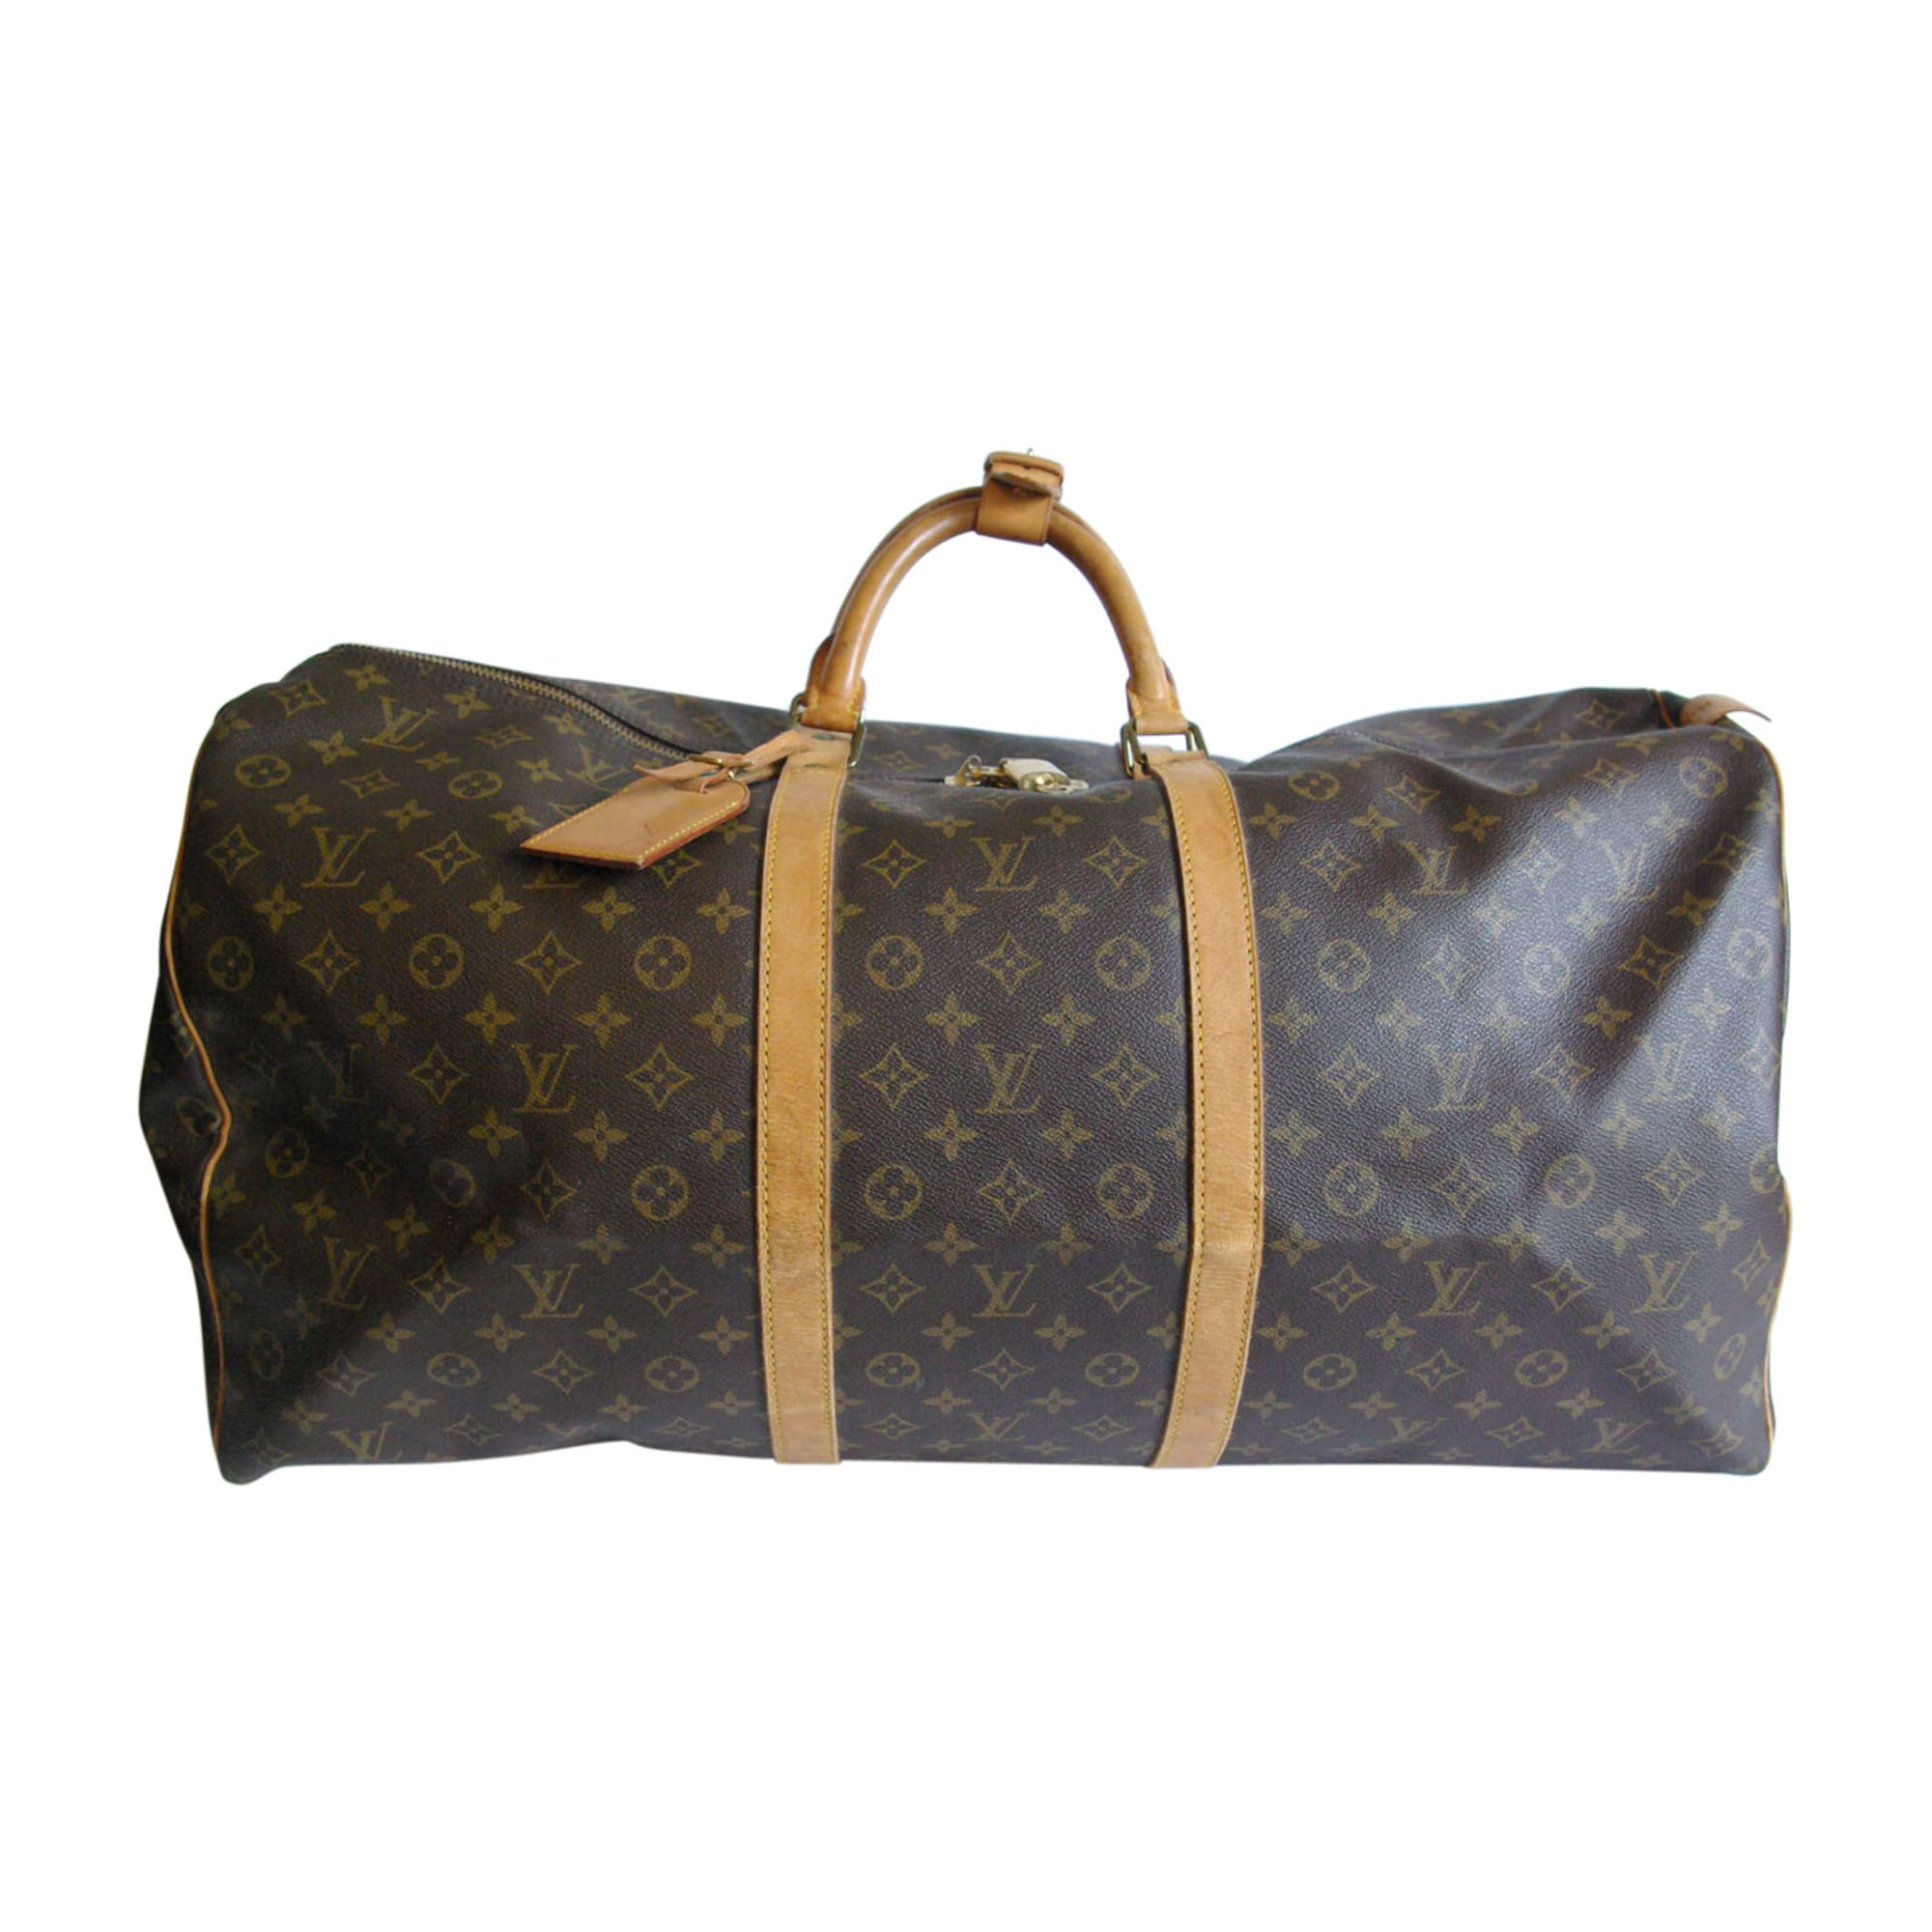 ledertasche gro louis vuitton braun vendu par l comme luxe 5232813. Black Bedroom Furniture Sets. Home Design Ideas